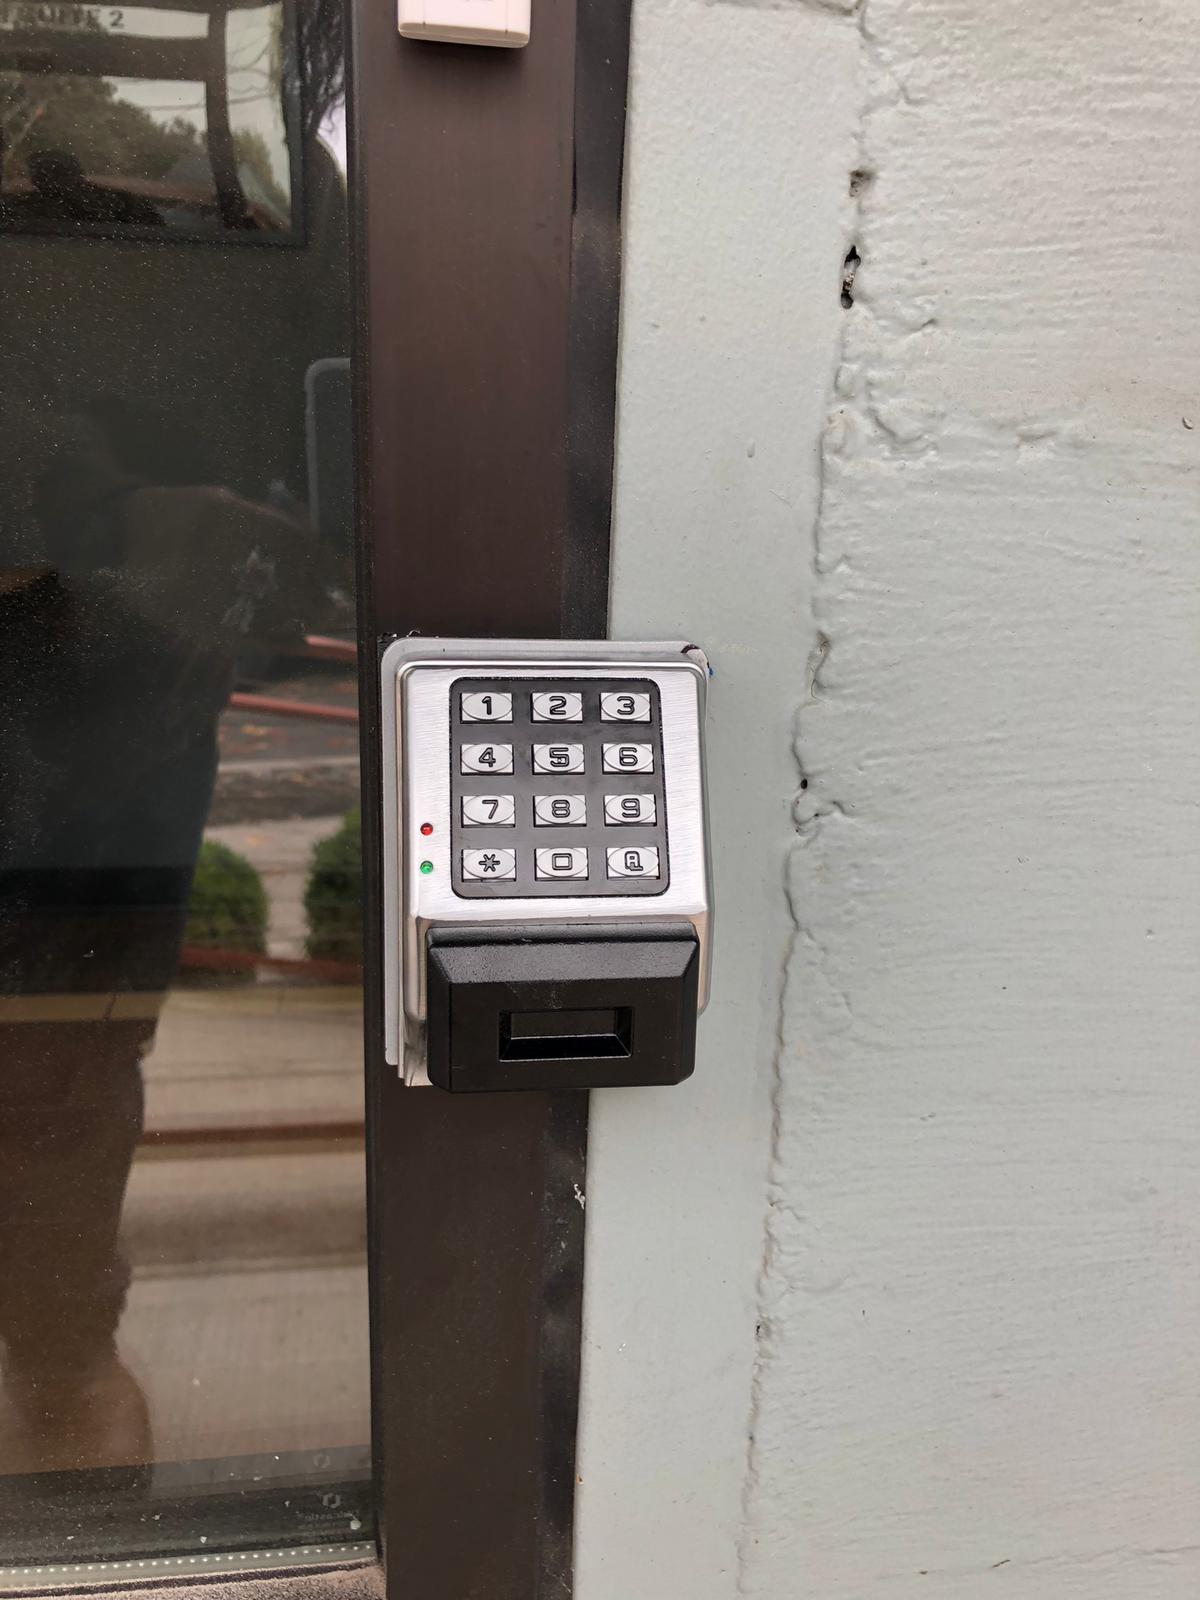 Access Control Devices for your Commercial Property, Business and Home